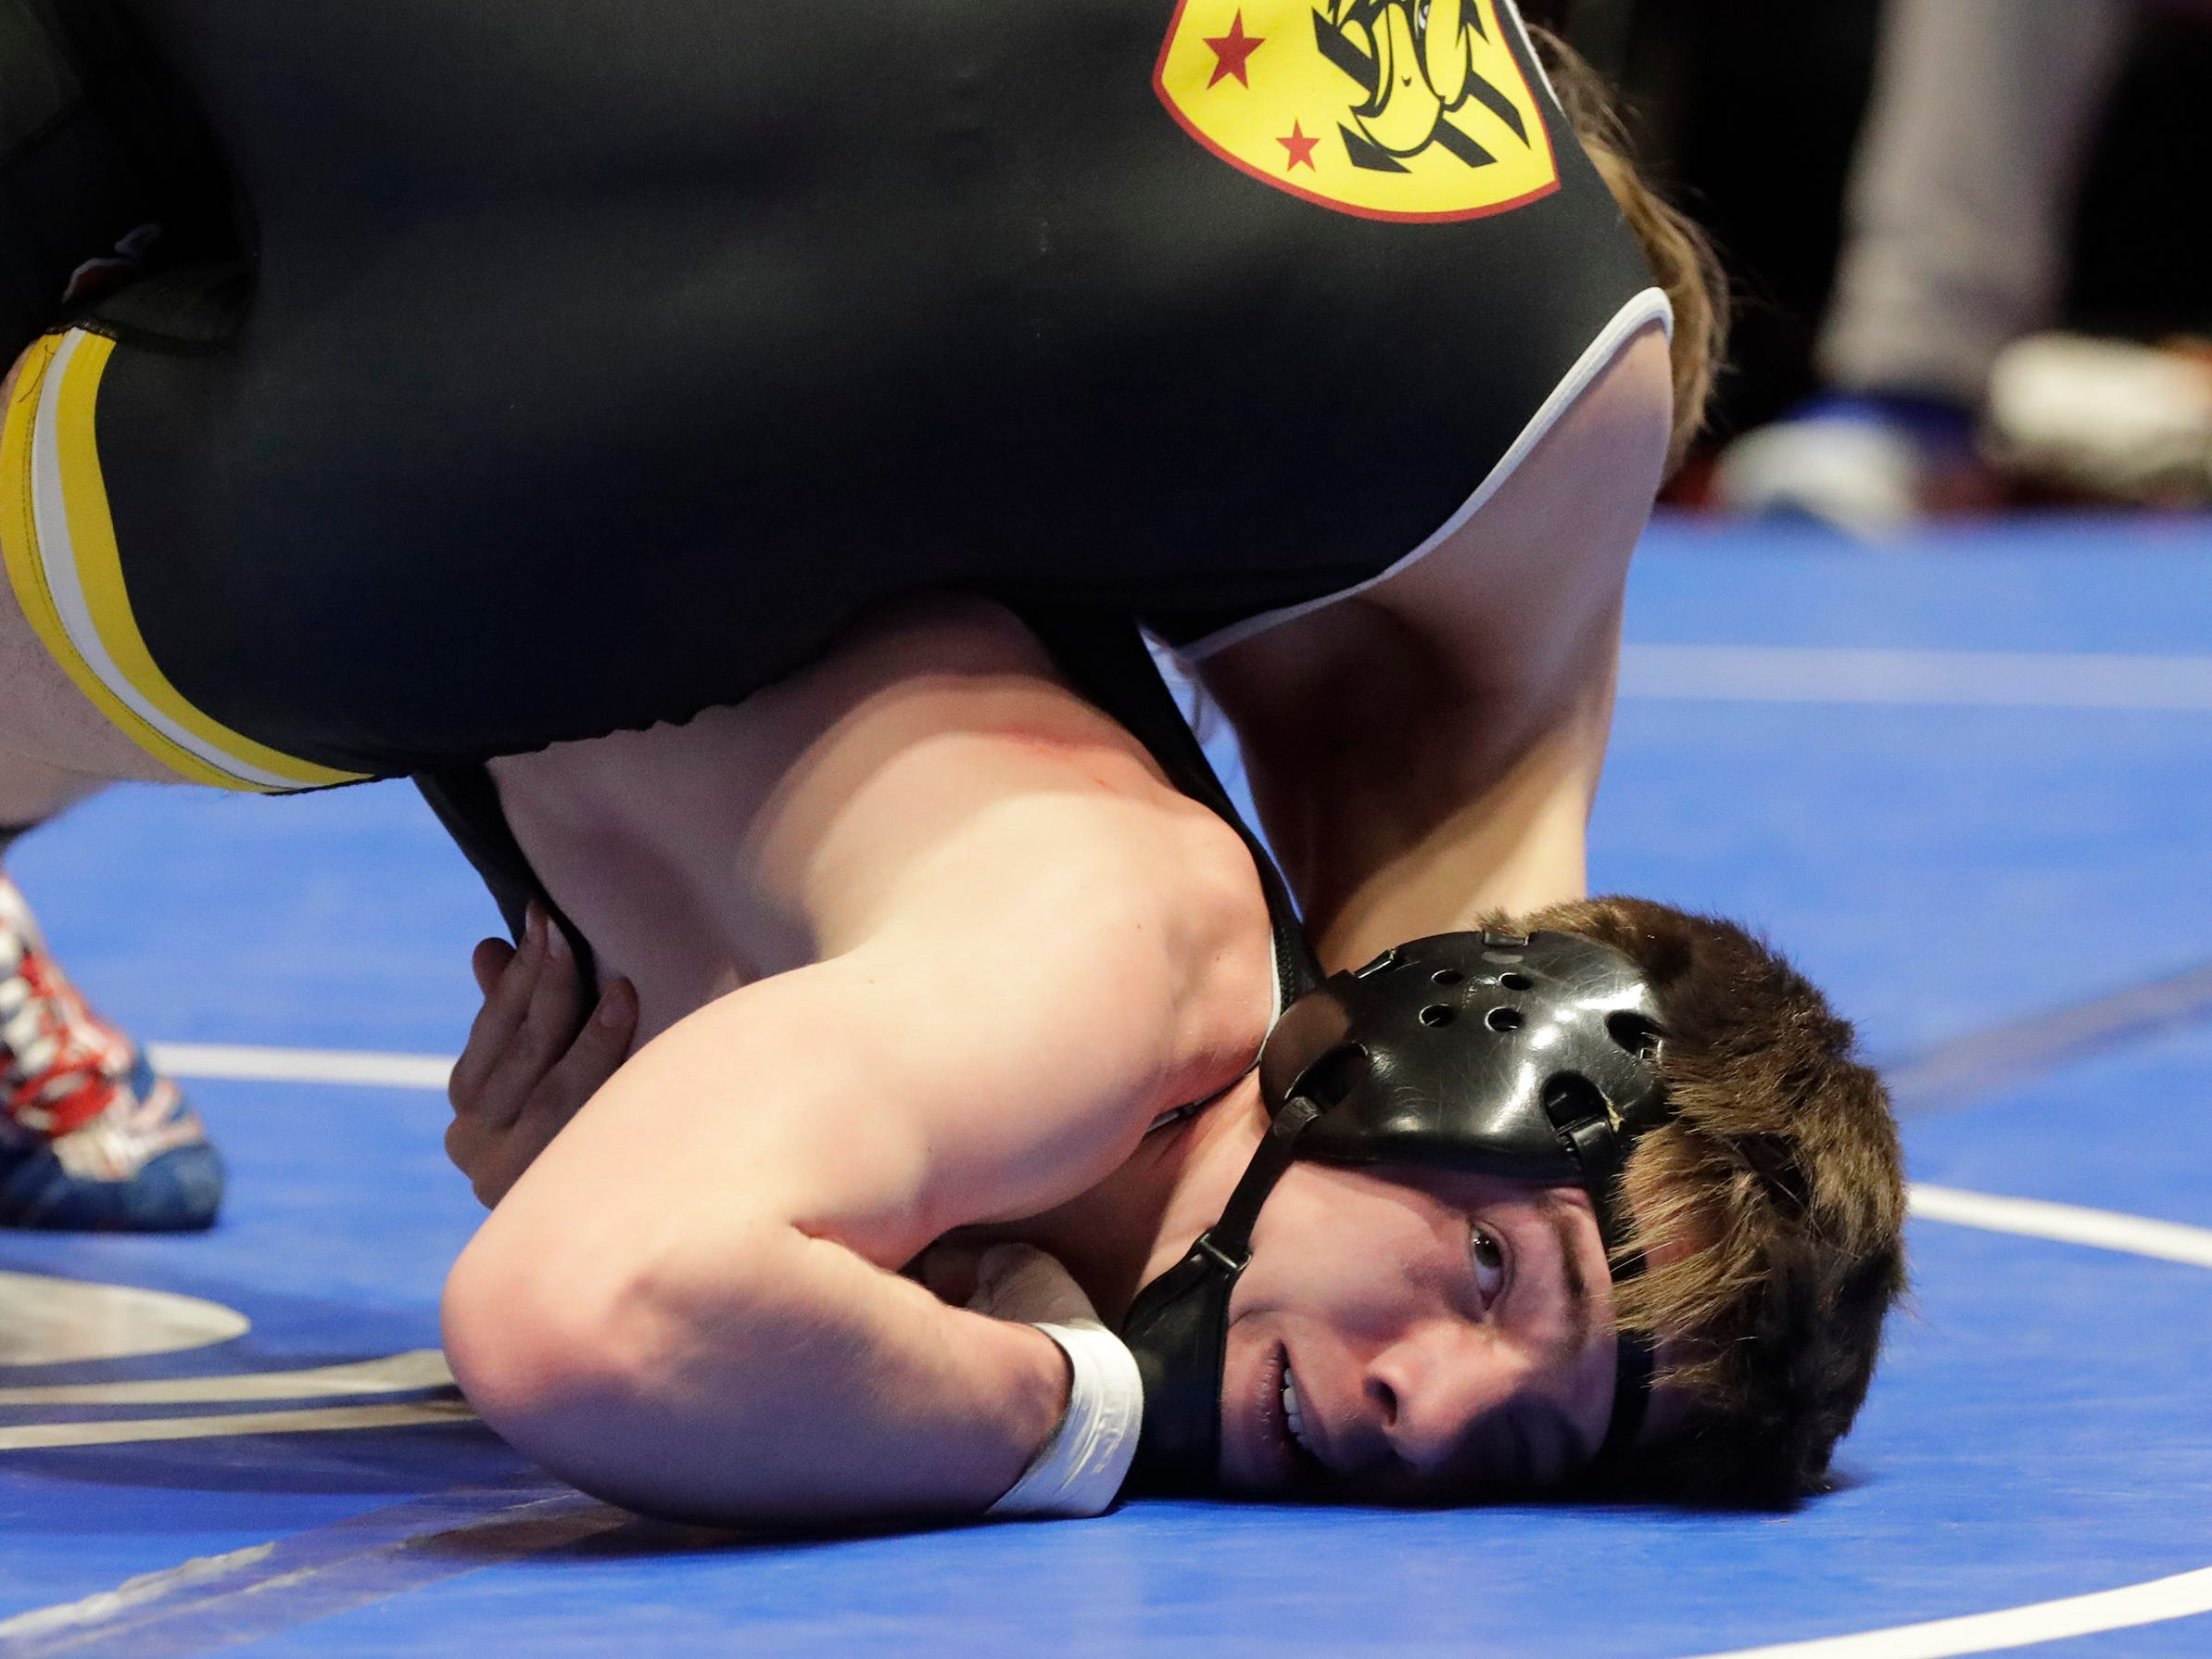 Stratford's Maverick Licciardi, bottom, looks up as he wrestles Fennimore's Trevor Wanek in the 145-pound class, Saturday, March 2, 2019, in Madison, Wis.